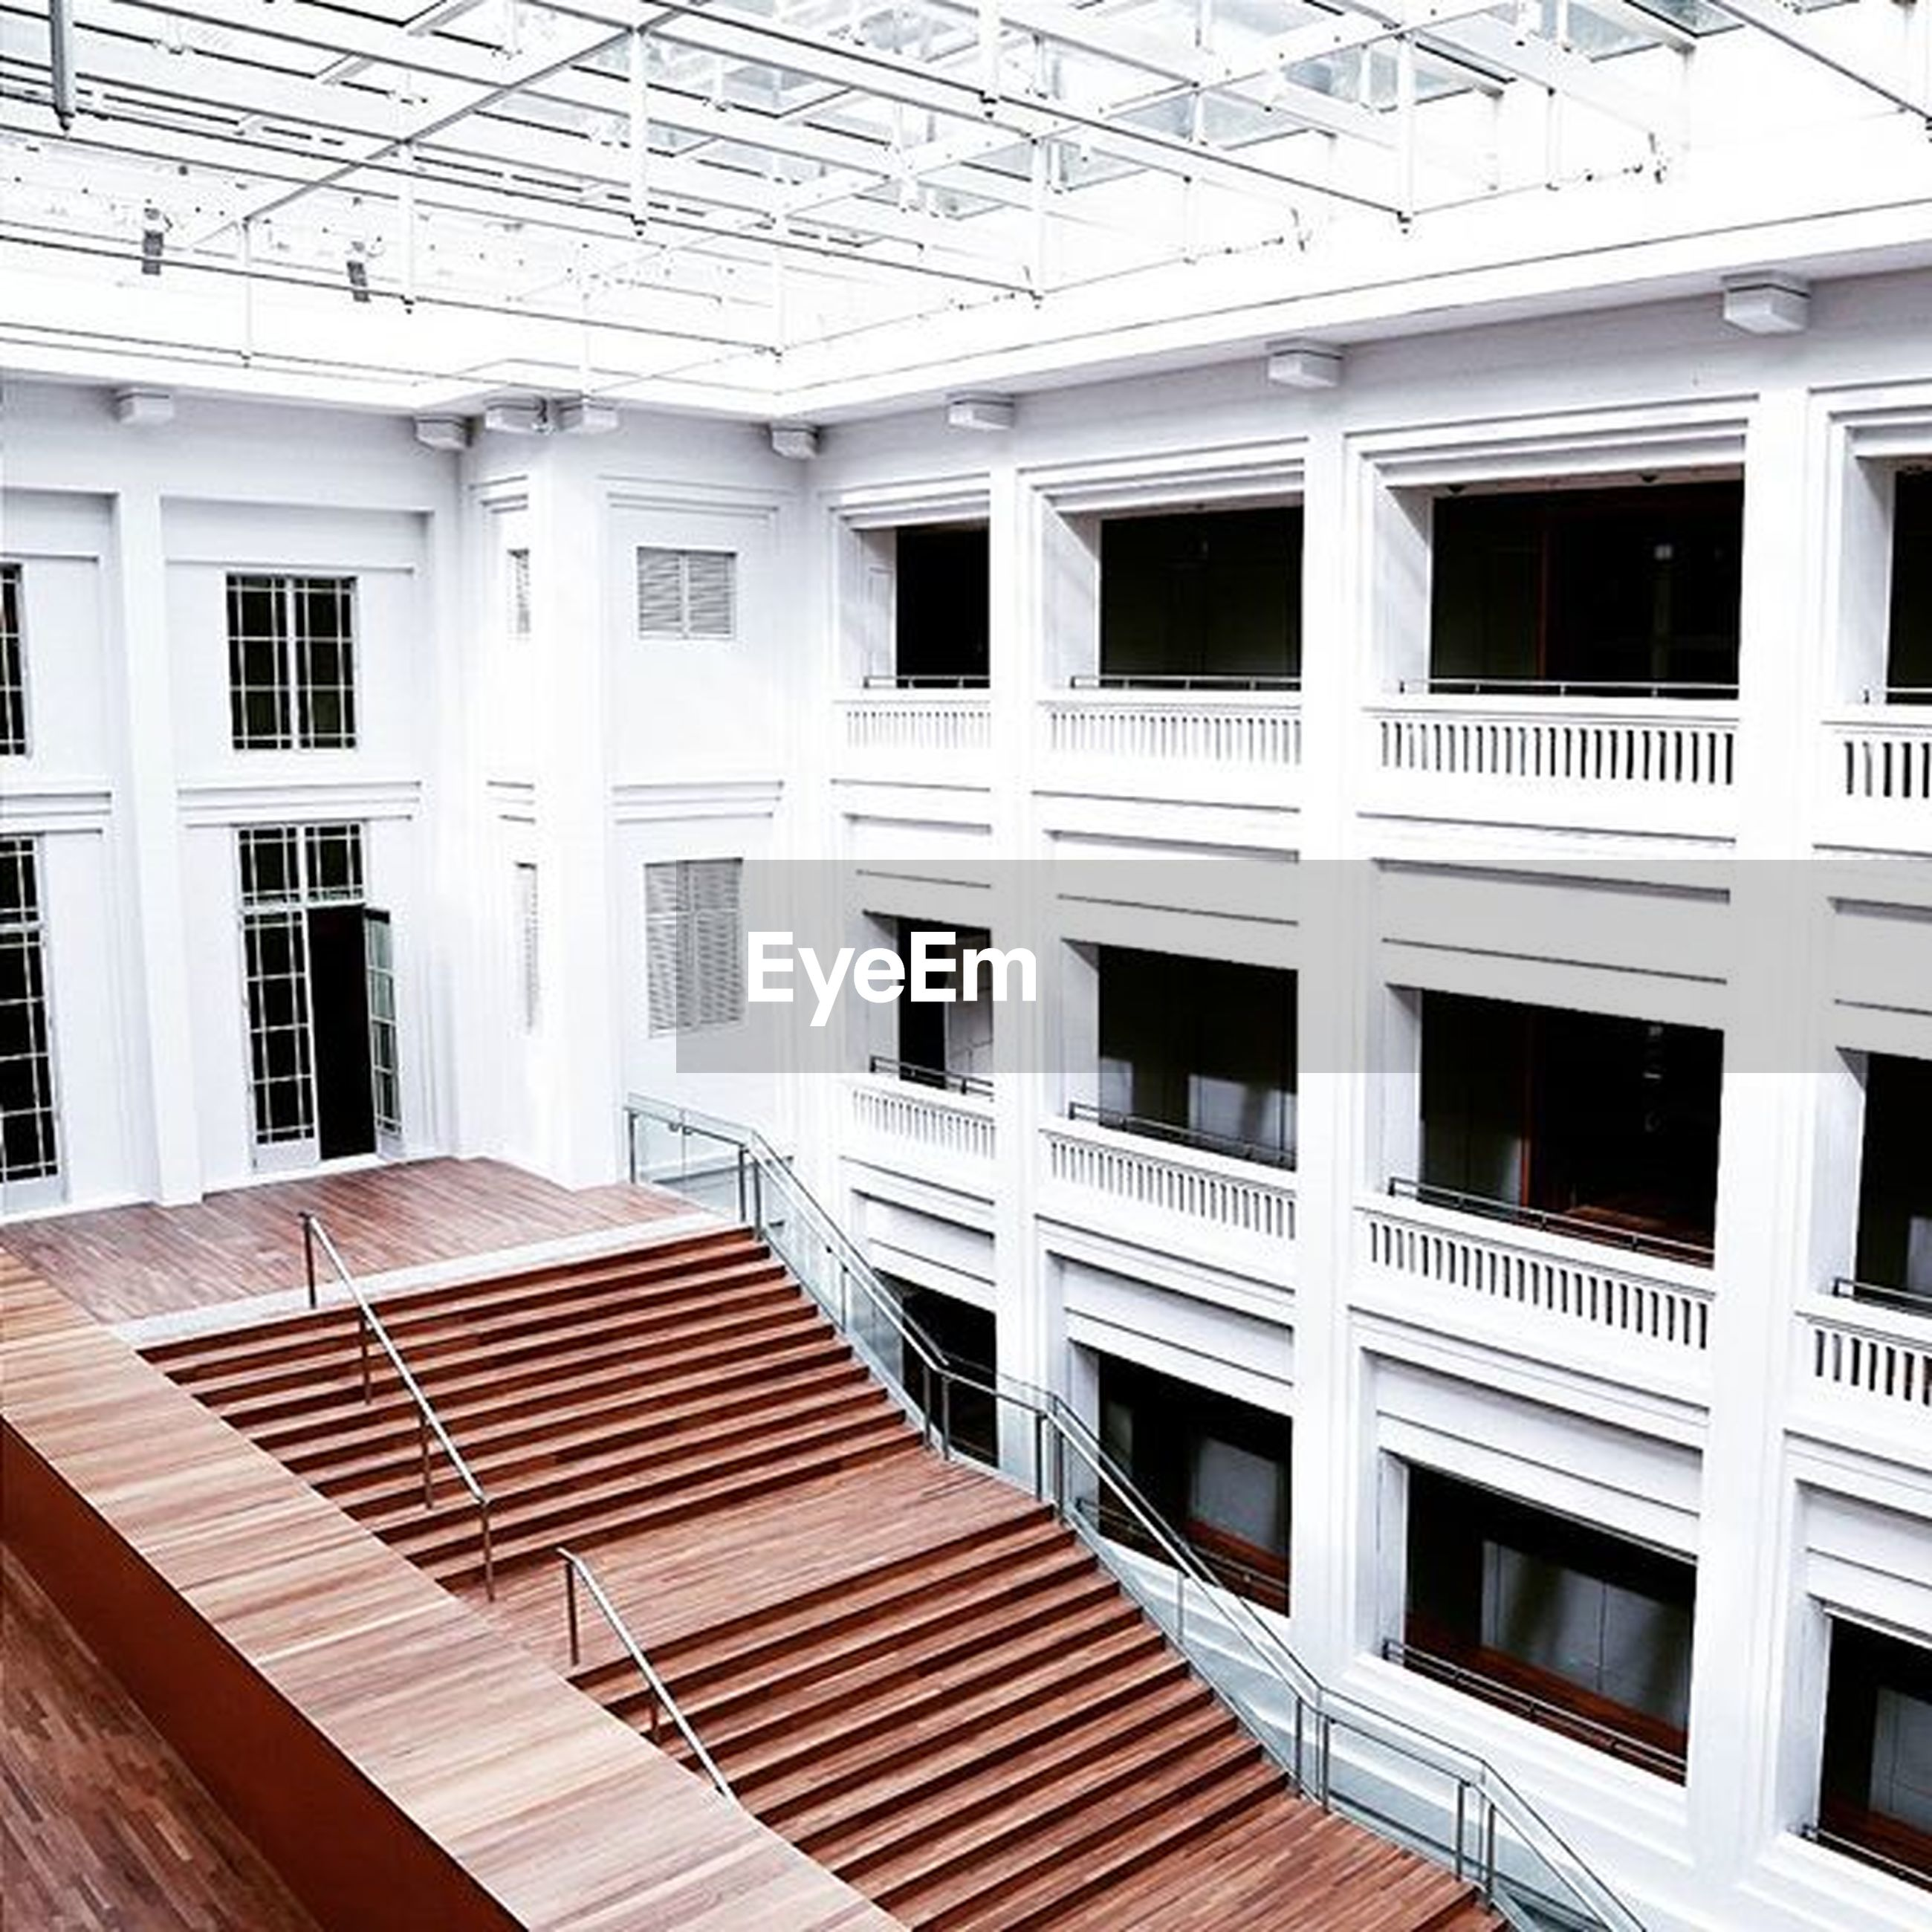 architecture, window, built structure, building exterior, indoors, building, glass - material, balcony, day, in a row, house, no people, door, empty, wood - material, absence, repetition, flooring, side by side, sunlight